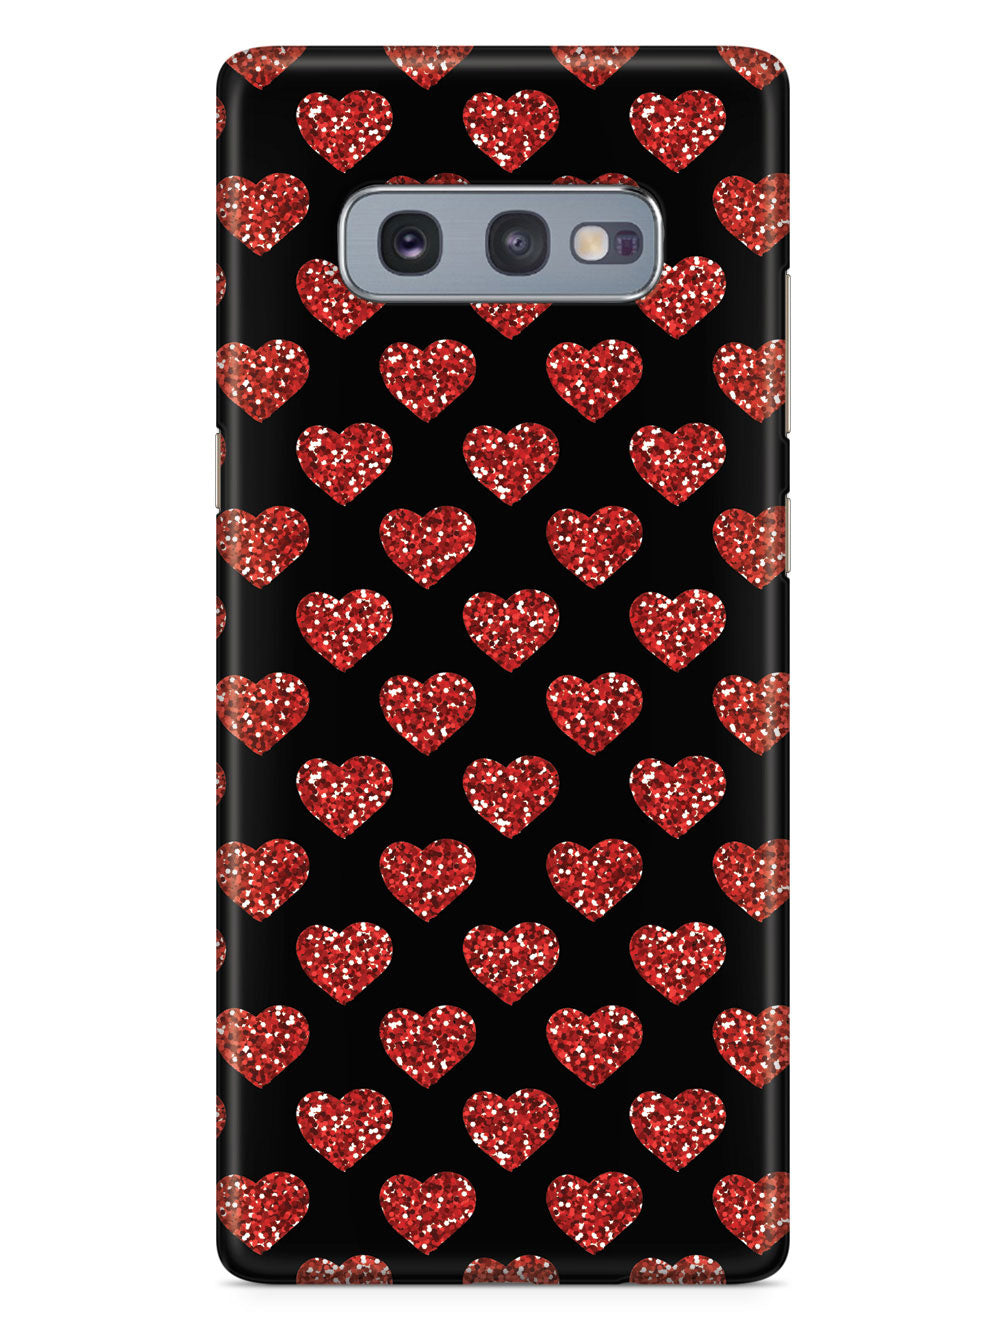 Red Glitter Heart Pattern - Black Case